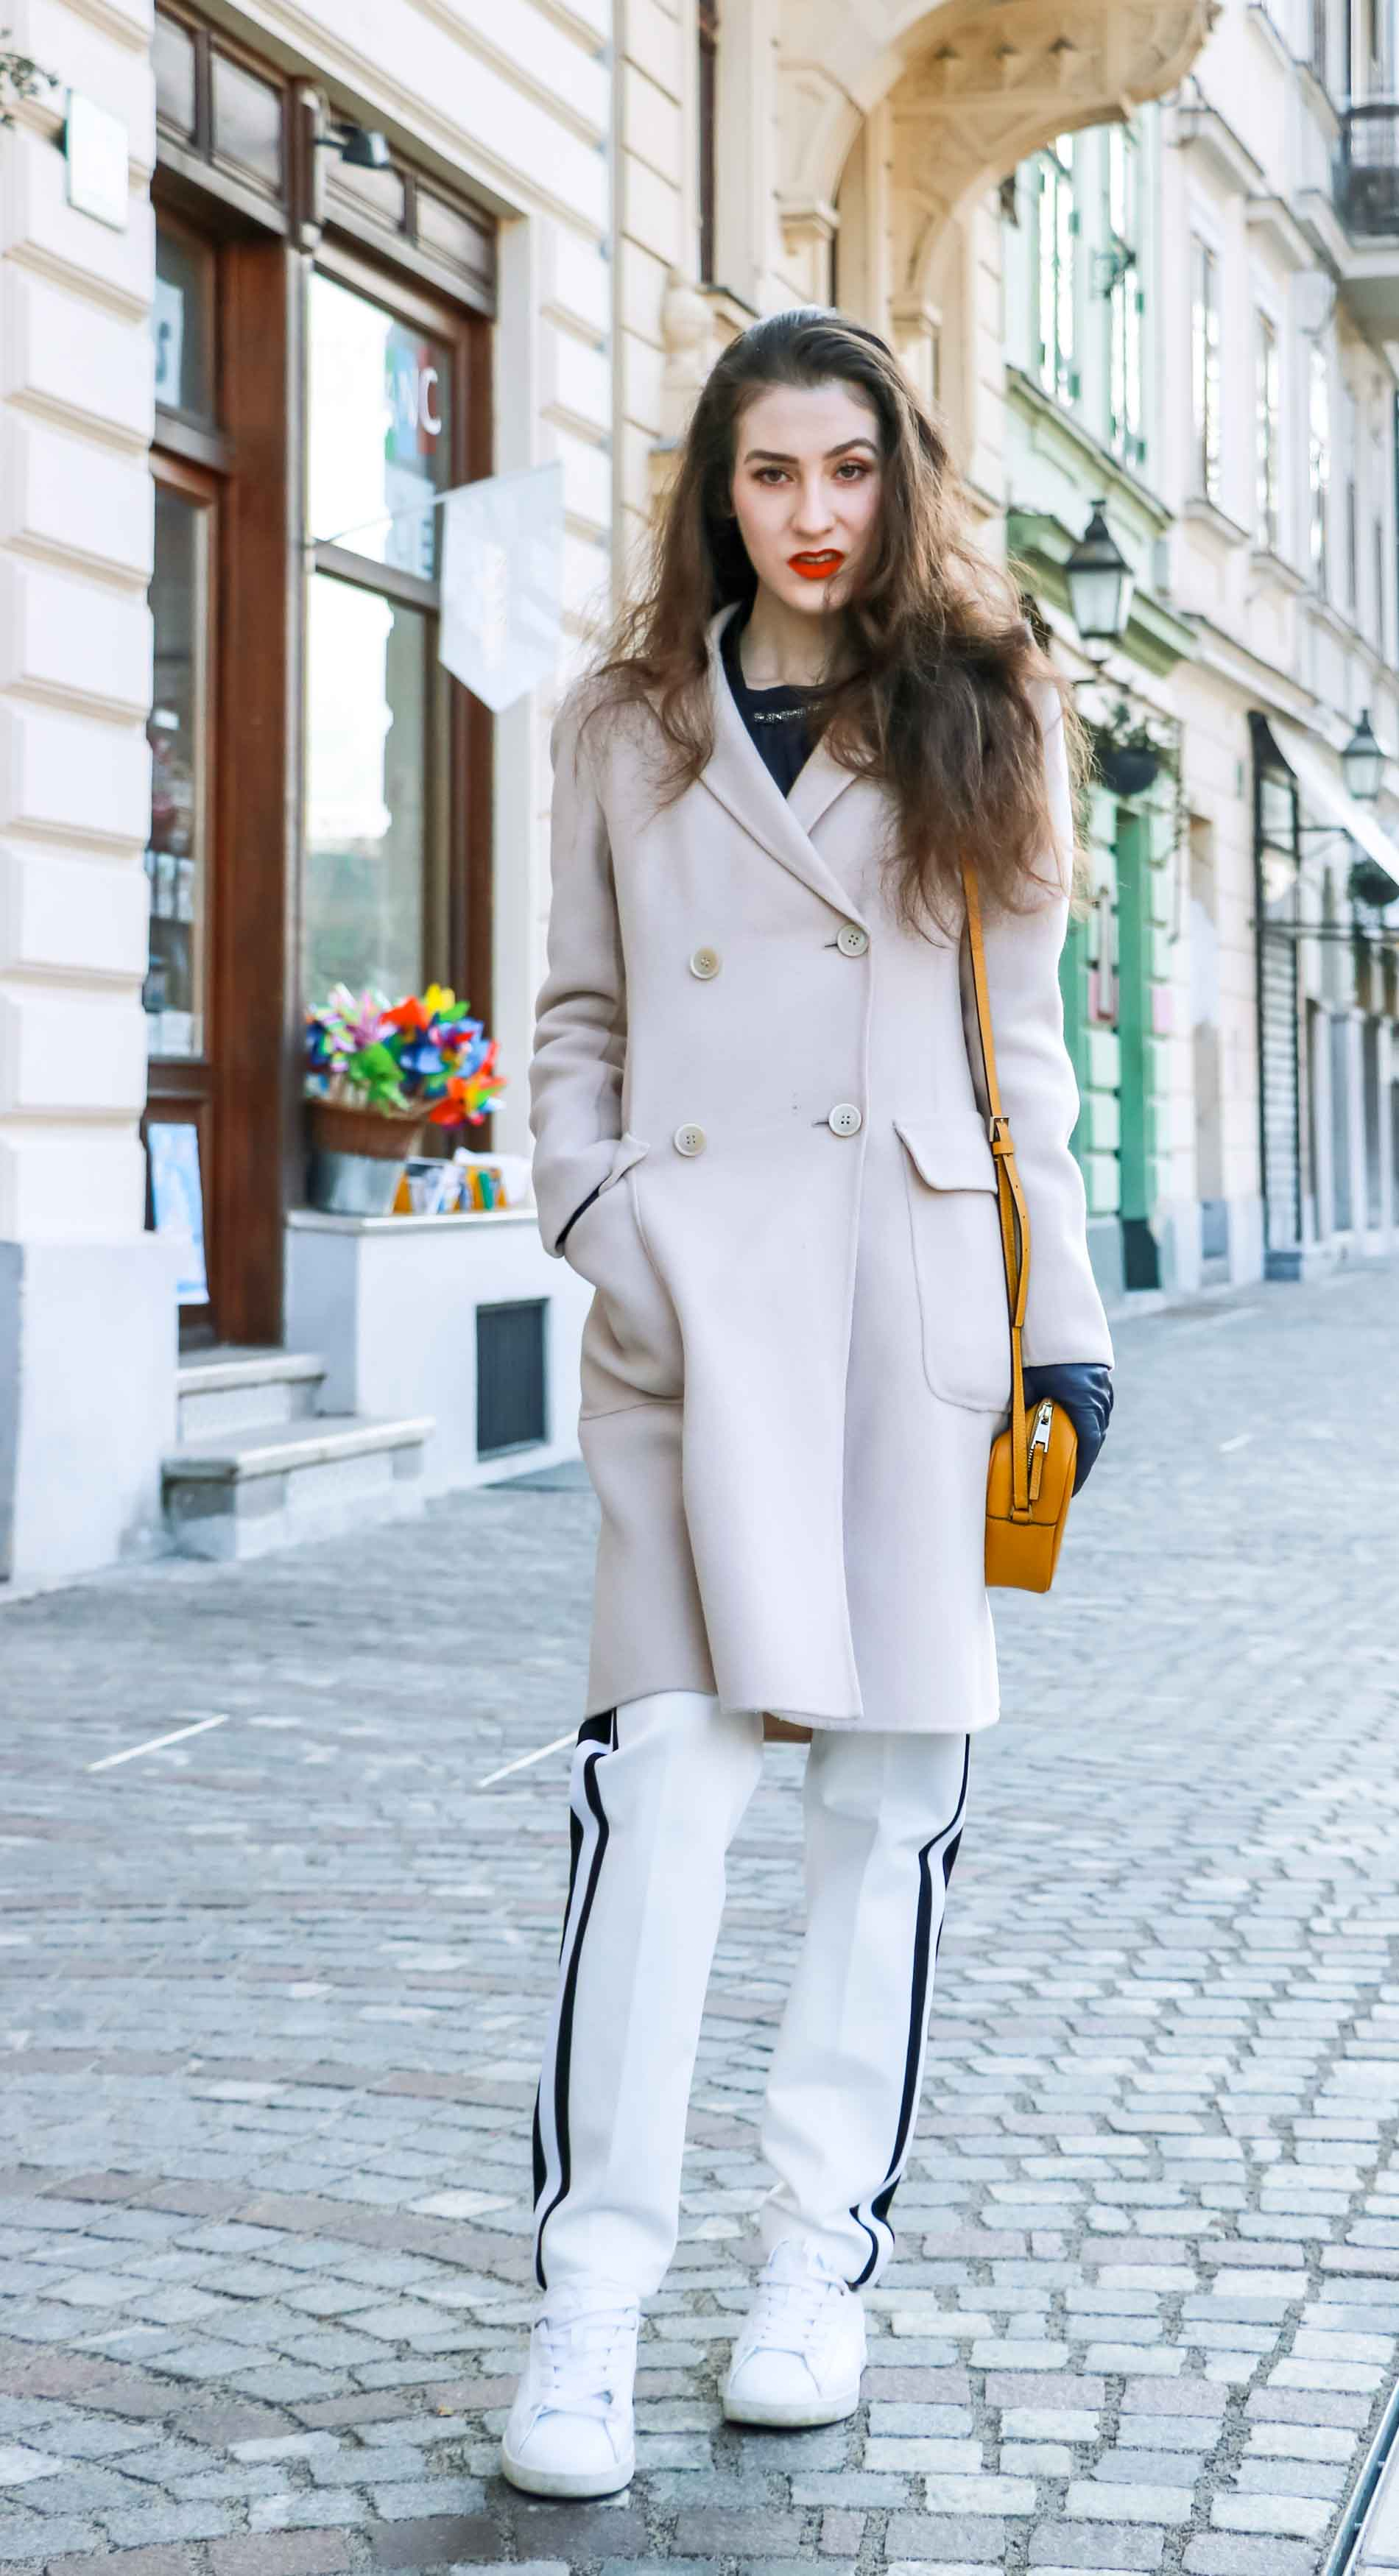 Fashion Blogger Veronika Lipar of Brunette from Wall Street dressed in white track pants with black side stripe from Escada, black silk blouse, off-white pastel double breasted coat from Weekend Max Mara, white leather sneakers from Diesel, yellow shoulder bag from Escada while standing on the street in Ljubljana